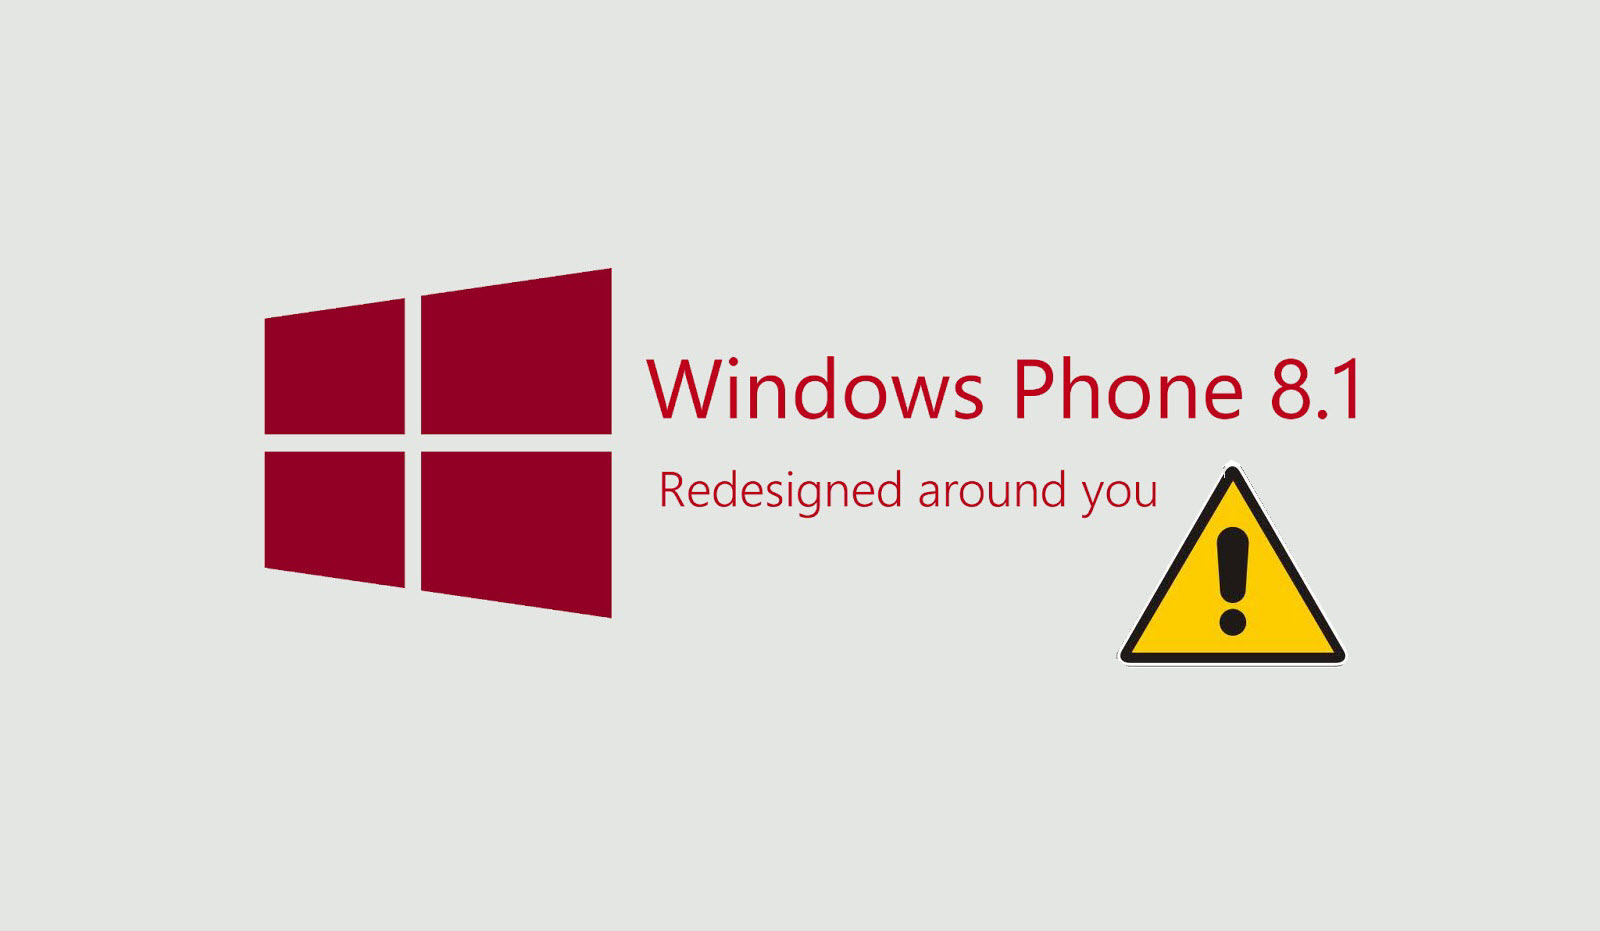 loi windows phone 8.1 1